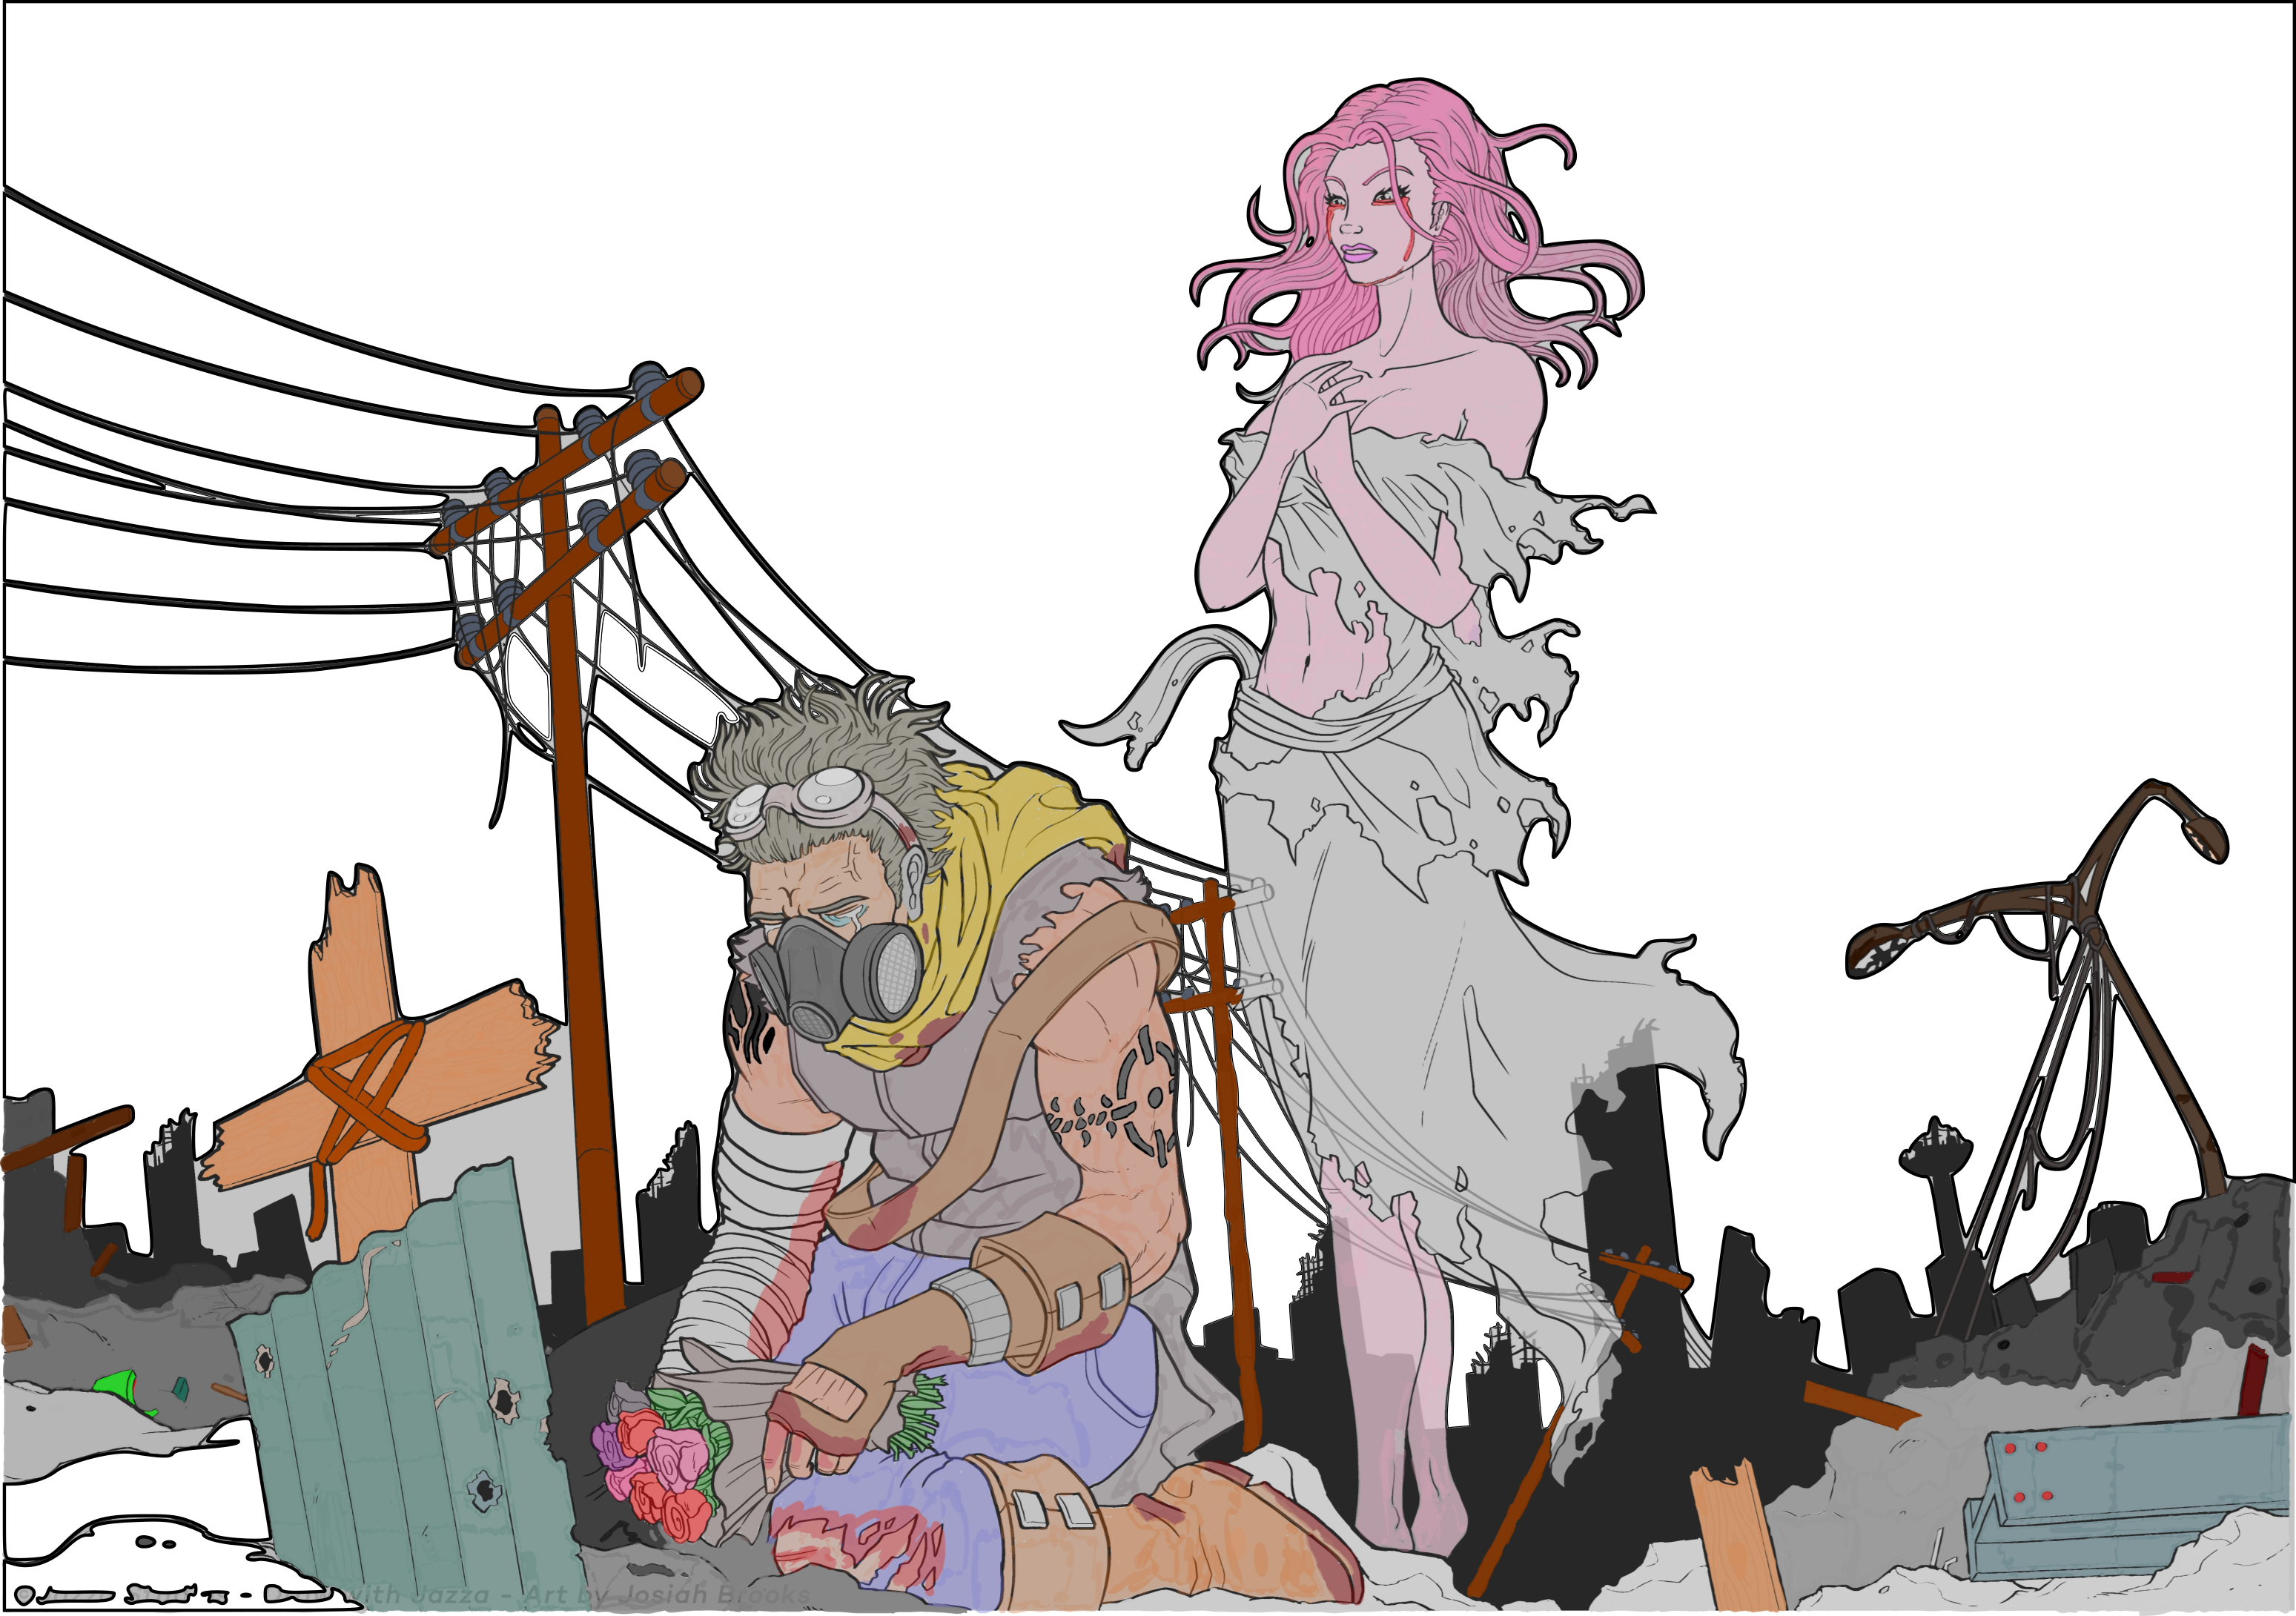 Sketch and coloring issues